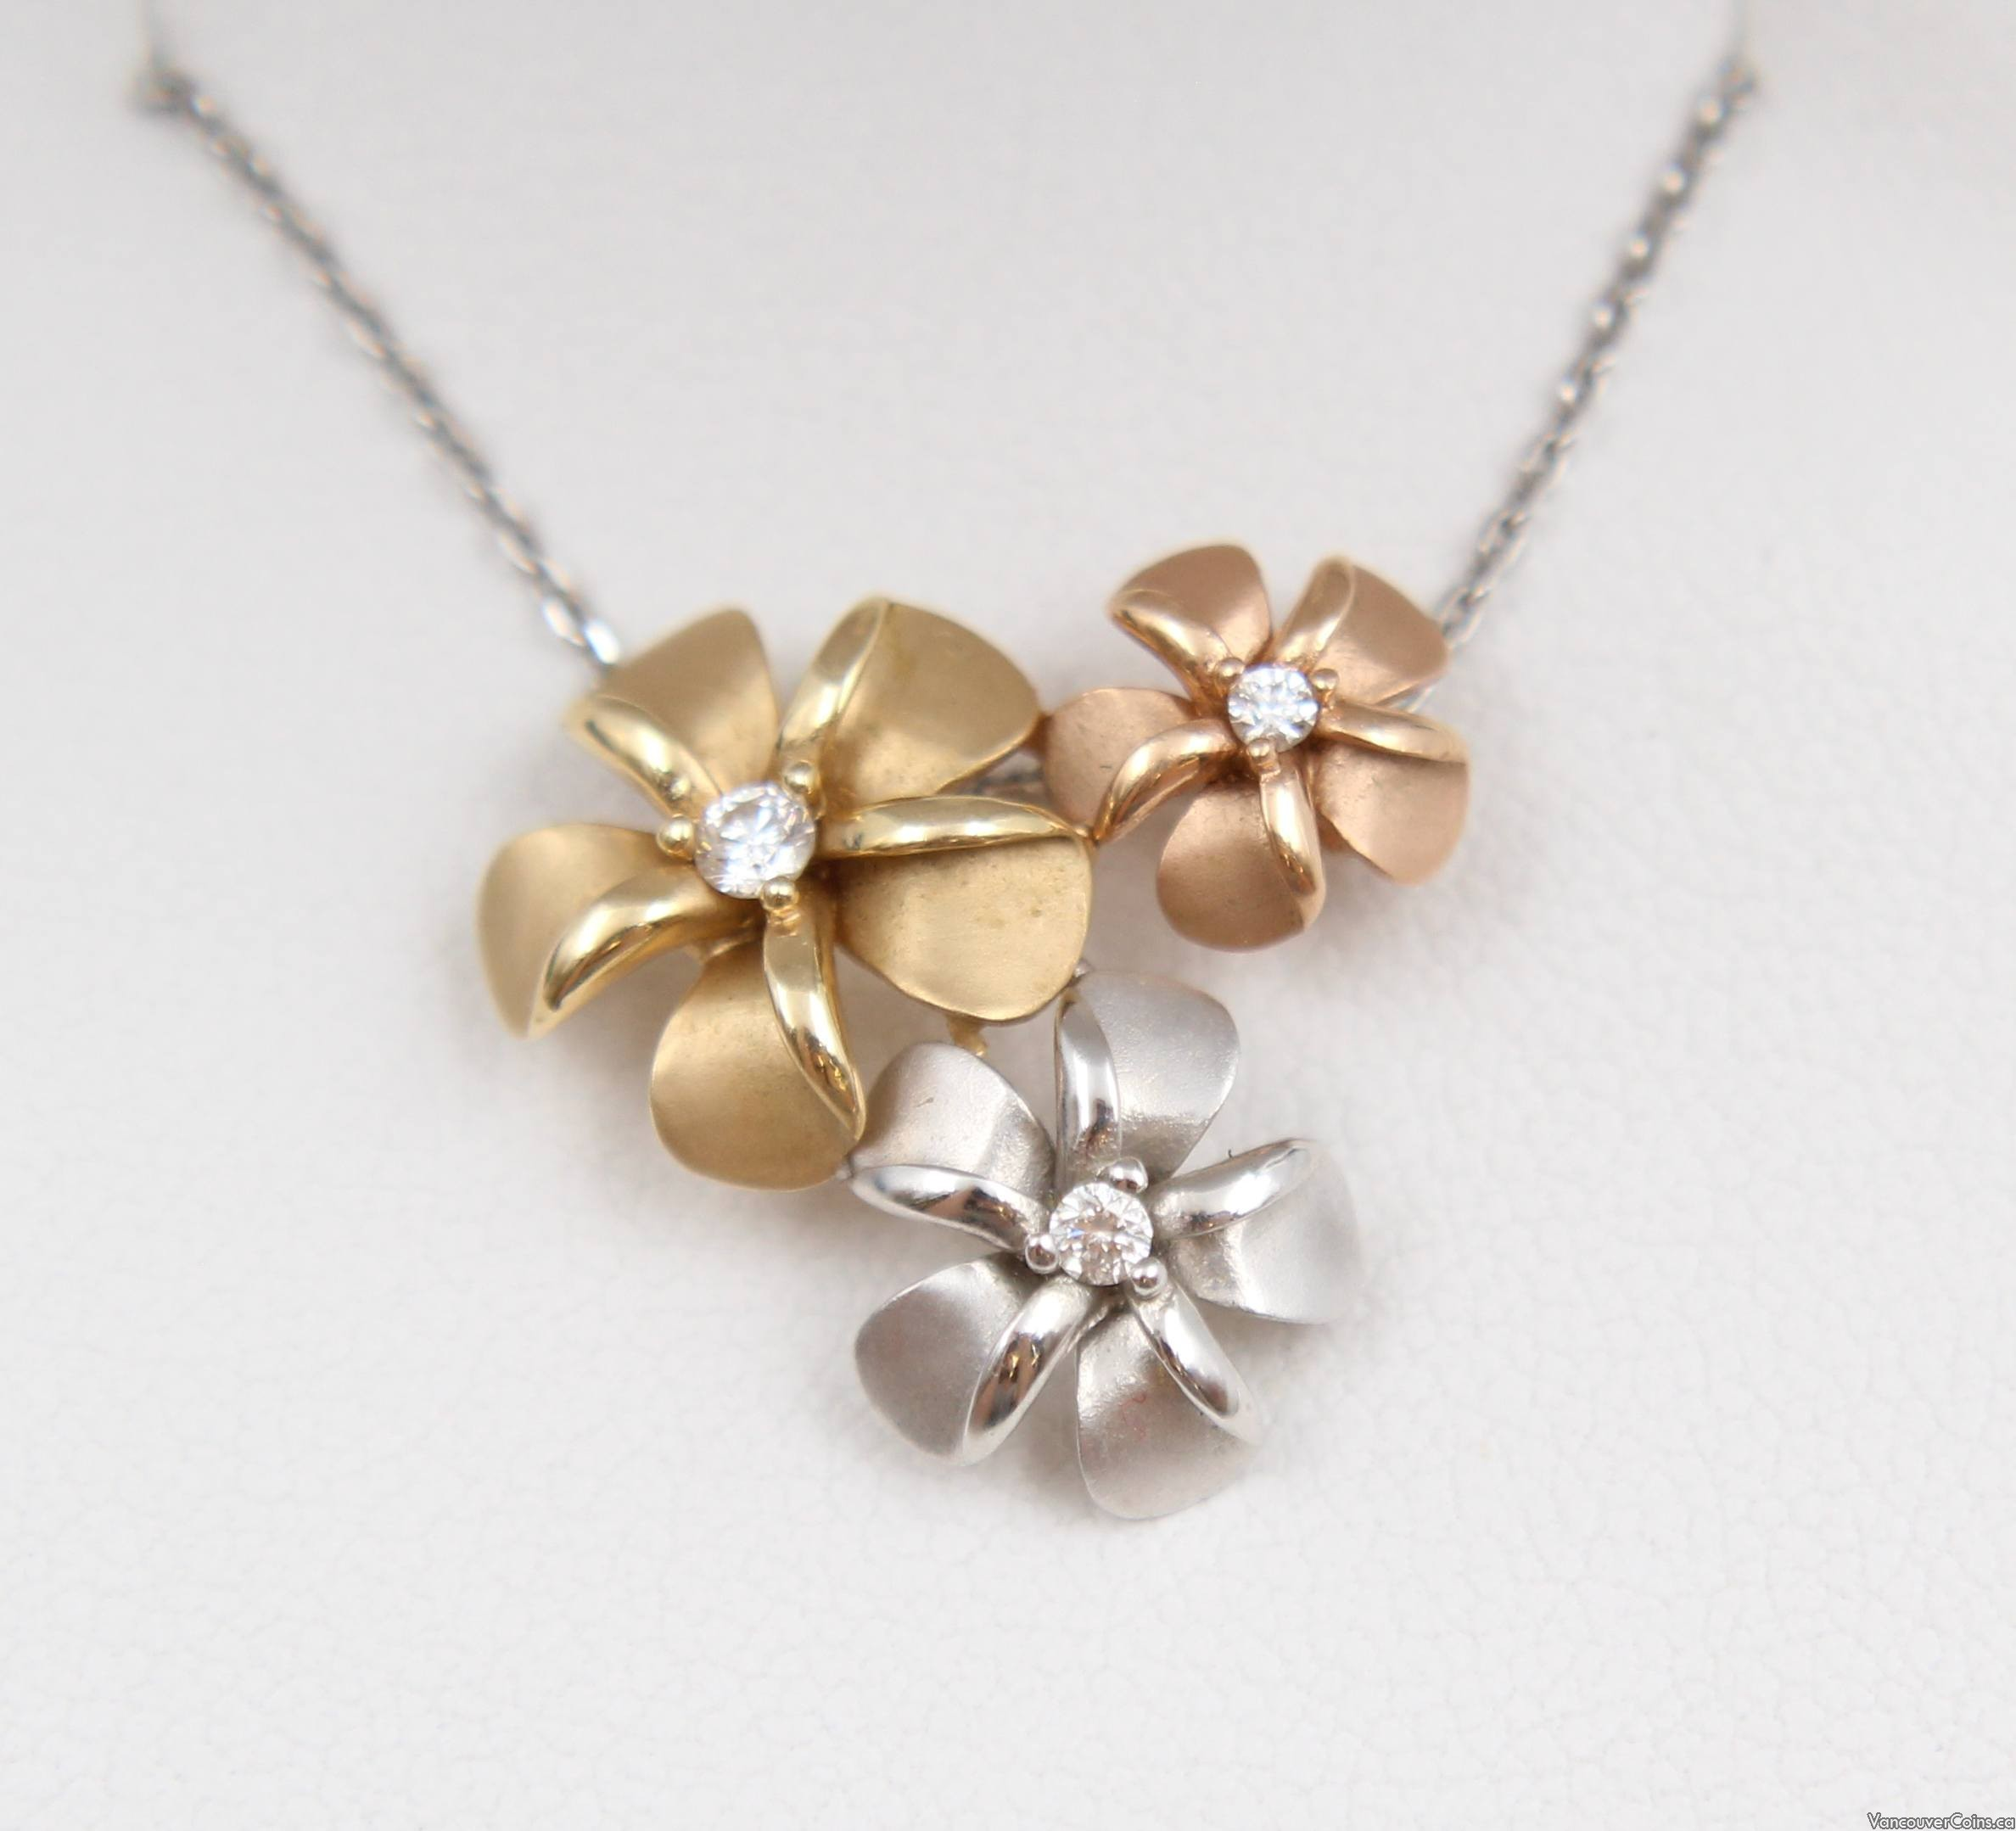 14K Gold NA HOKU Tri-Color Plumeria Bouquet Pendant Diamond Necklace